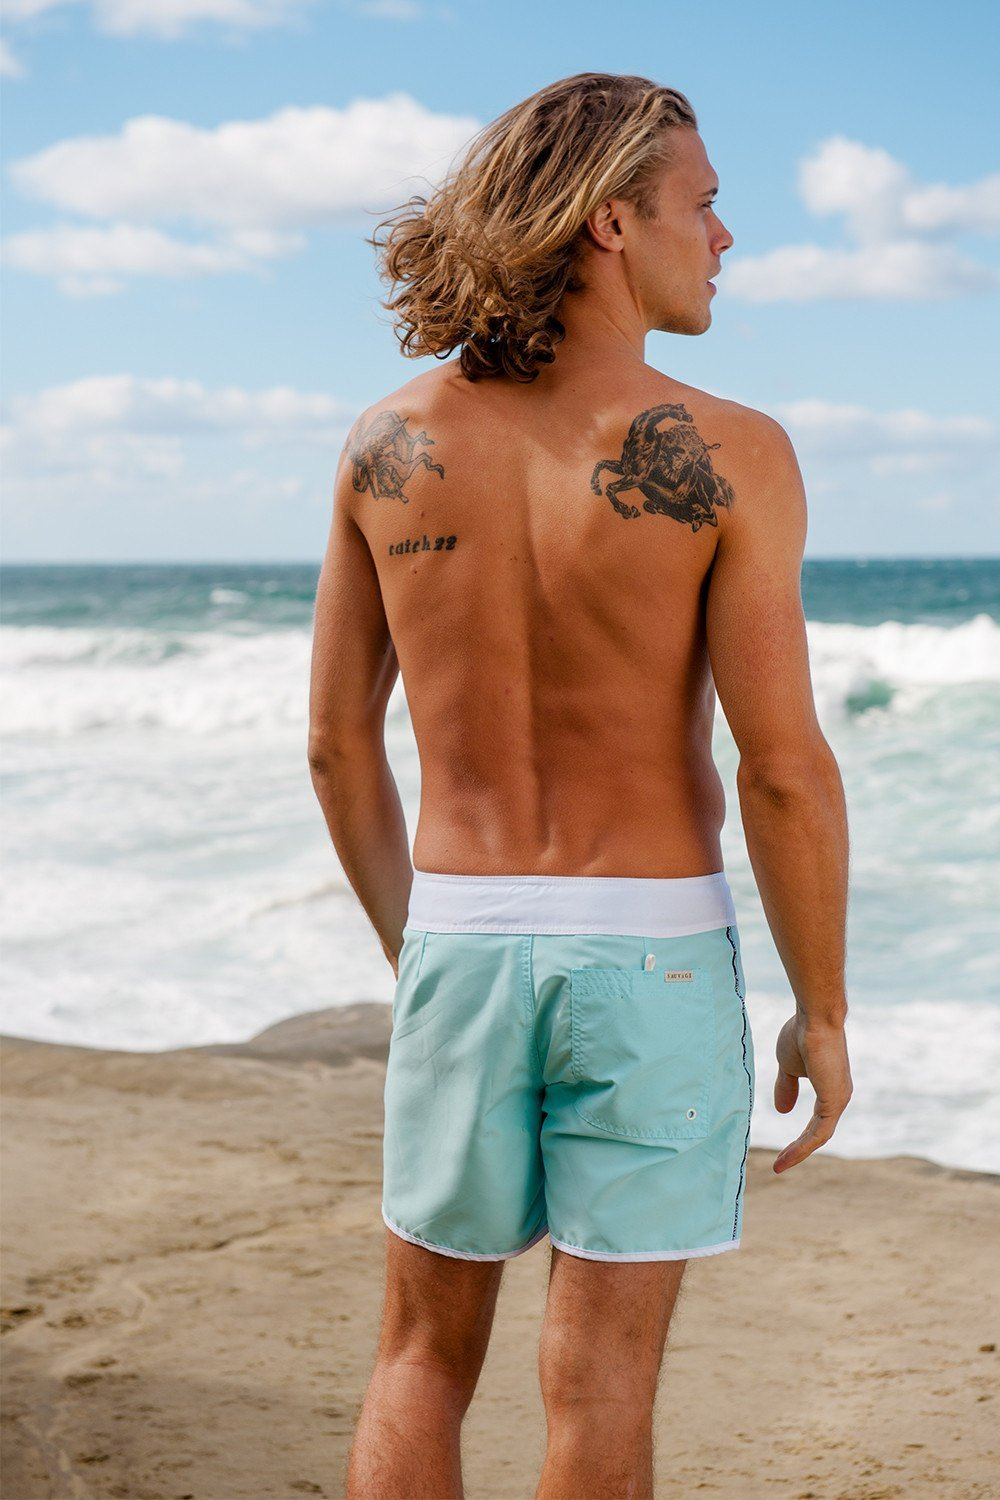 Sauvage Swimwear, Designer Swimwear from San Diego, CA made in usaPromenade Surf Short, , Mens Swim, Sauvage Swimwear Mens, Sauvage - 6